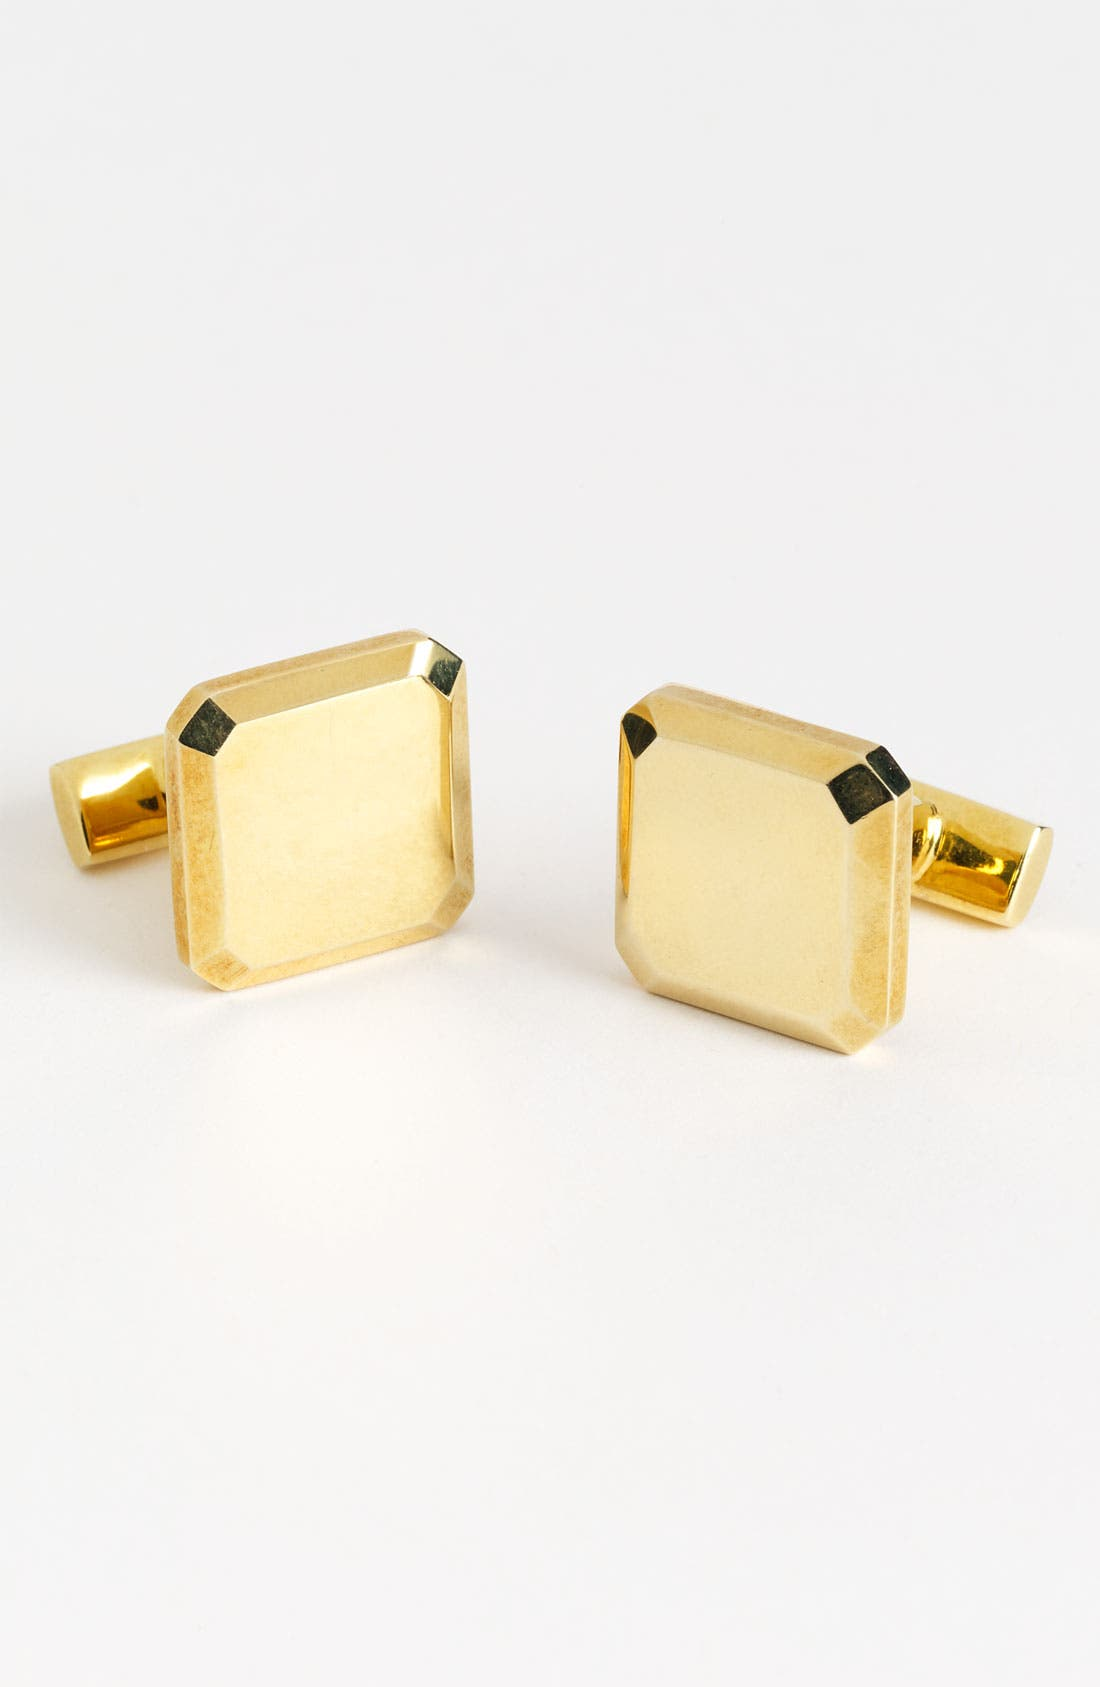 Alternate Image 1 Selected - Thomas Pink Square Cuff Links